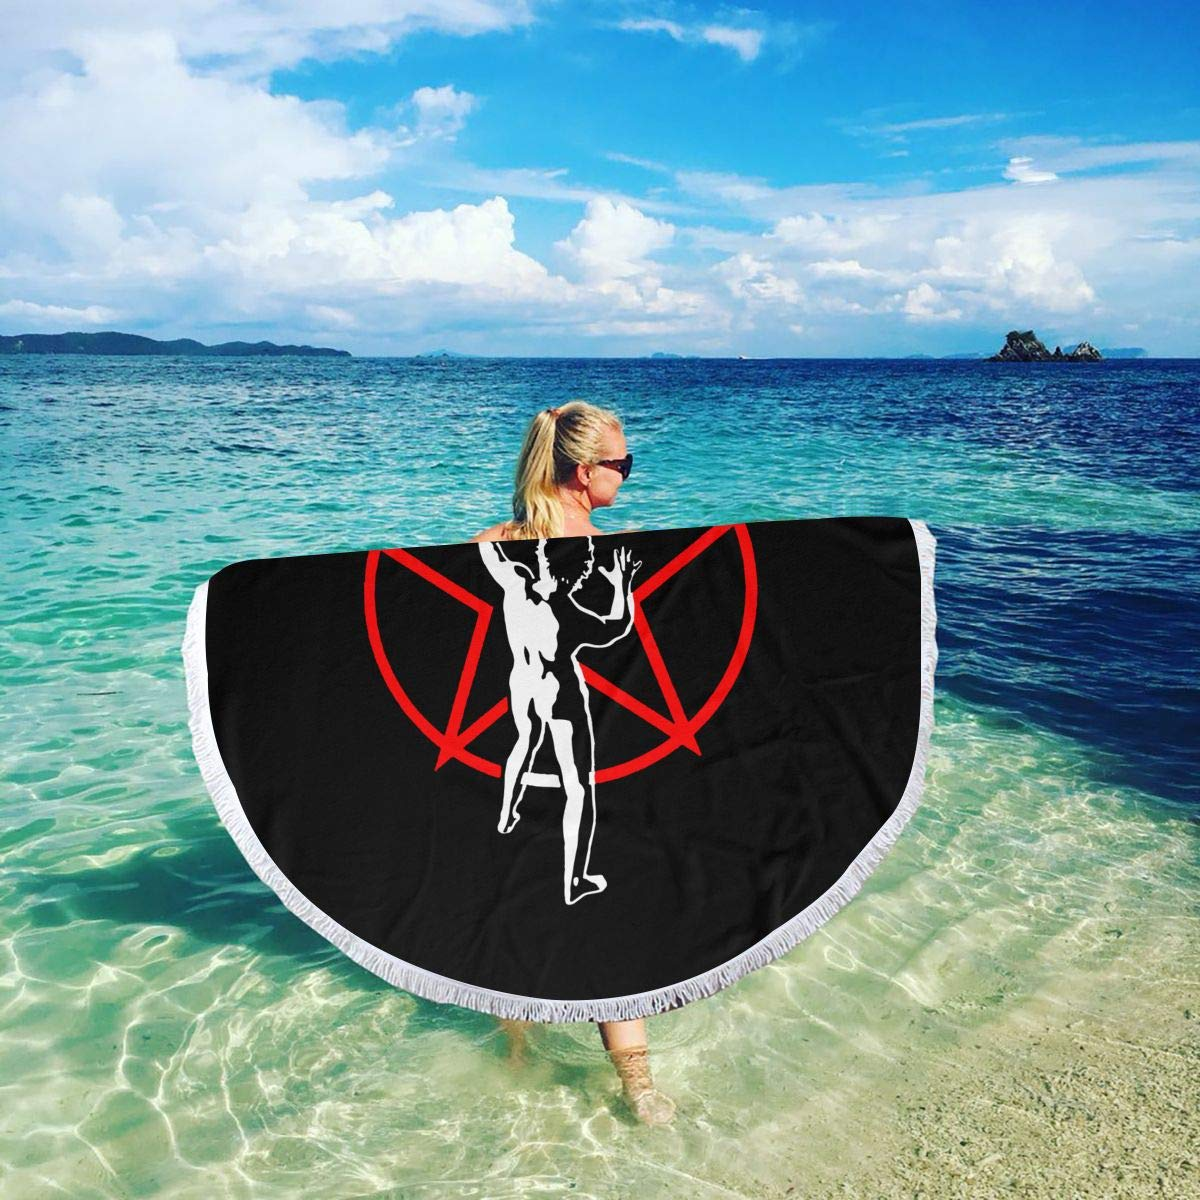 VIMMUCIR Beach Towel Rush Starman 2 Towels with Tassel Microfiber Oversized Round Picnic Mat Tapestry Table Cover Blanket